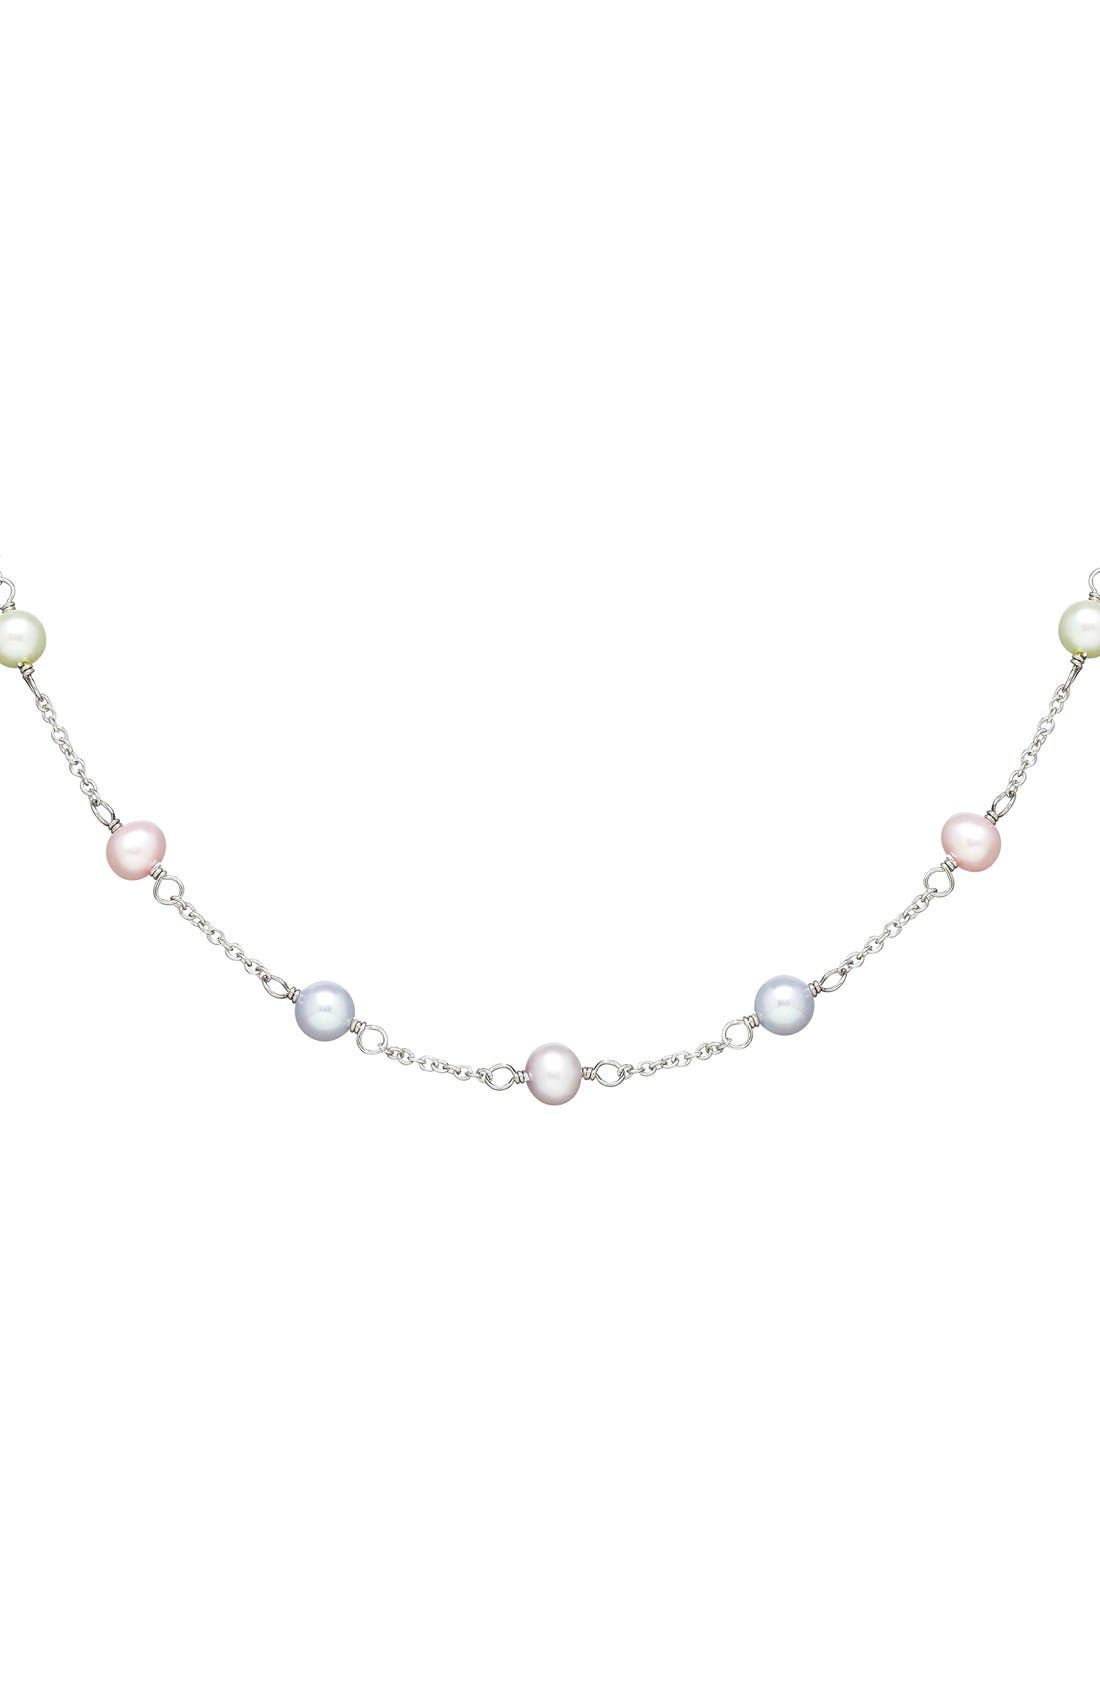 Freshwater Pearl Necklace,                             Alternate thumbnail 2, color,                             960